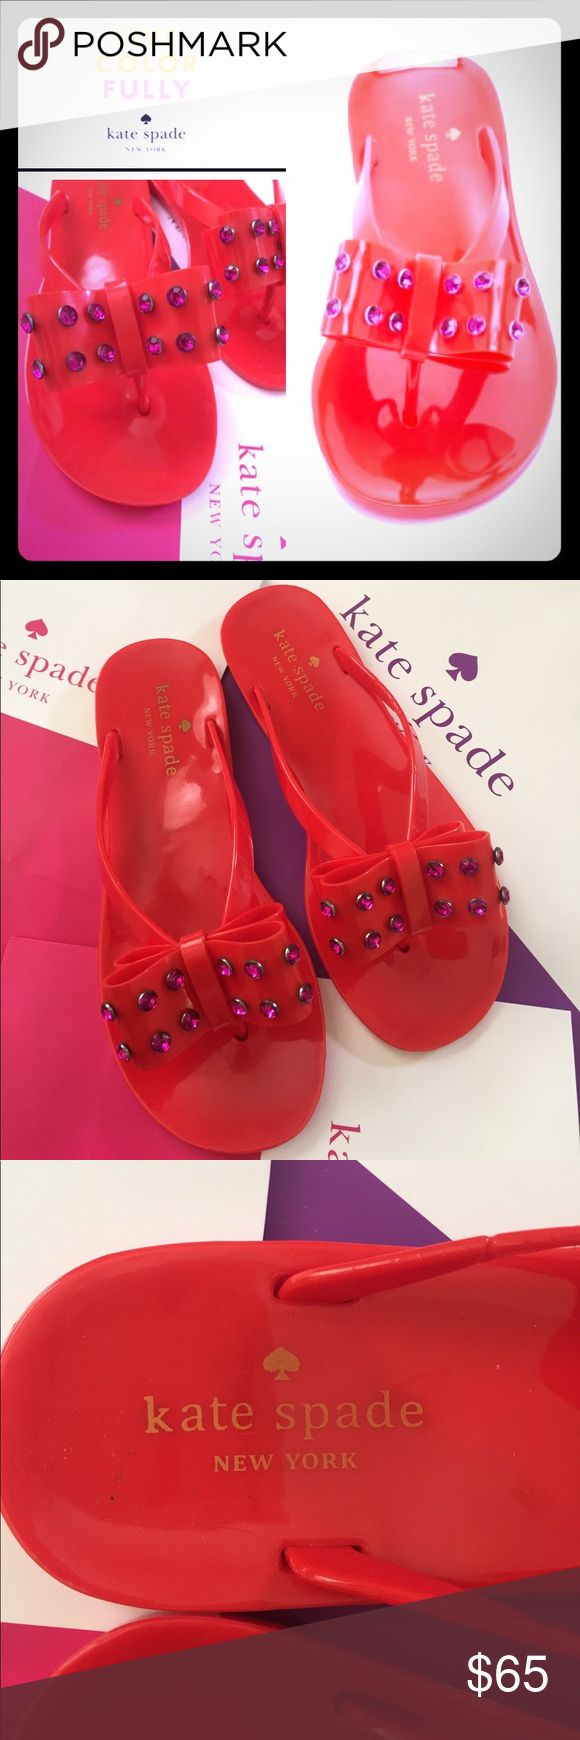 SALE♠️Kate Spade Fancy Jelly Flip Flops❤️ ♠️Kate Spade New York ♠️A rhinestone-studded bow accents these Kate Spade New York flip flops, these are so cute & fun❤️ // Rubber sole // Brand New without tags // Never worn // No Box // BUNDLE & SAVE  kate spade Shoes Sandals